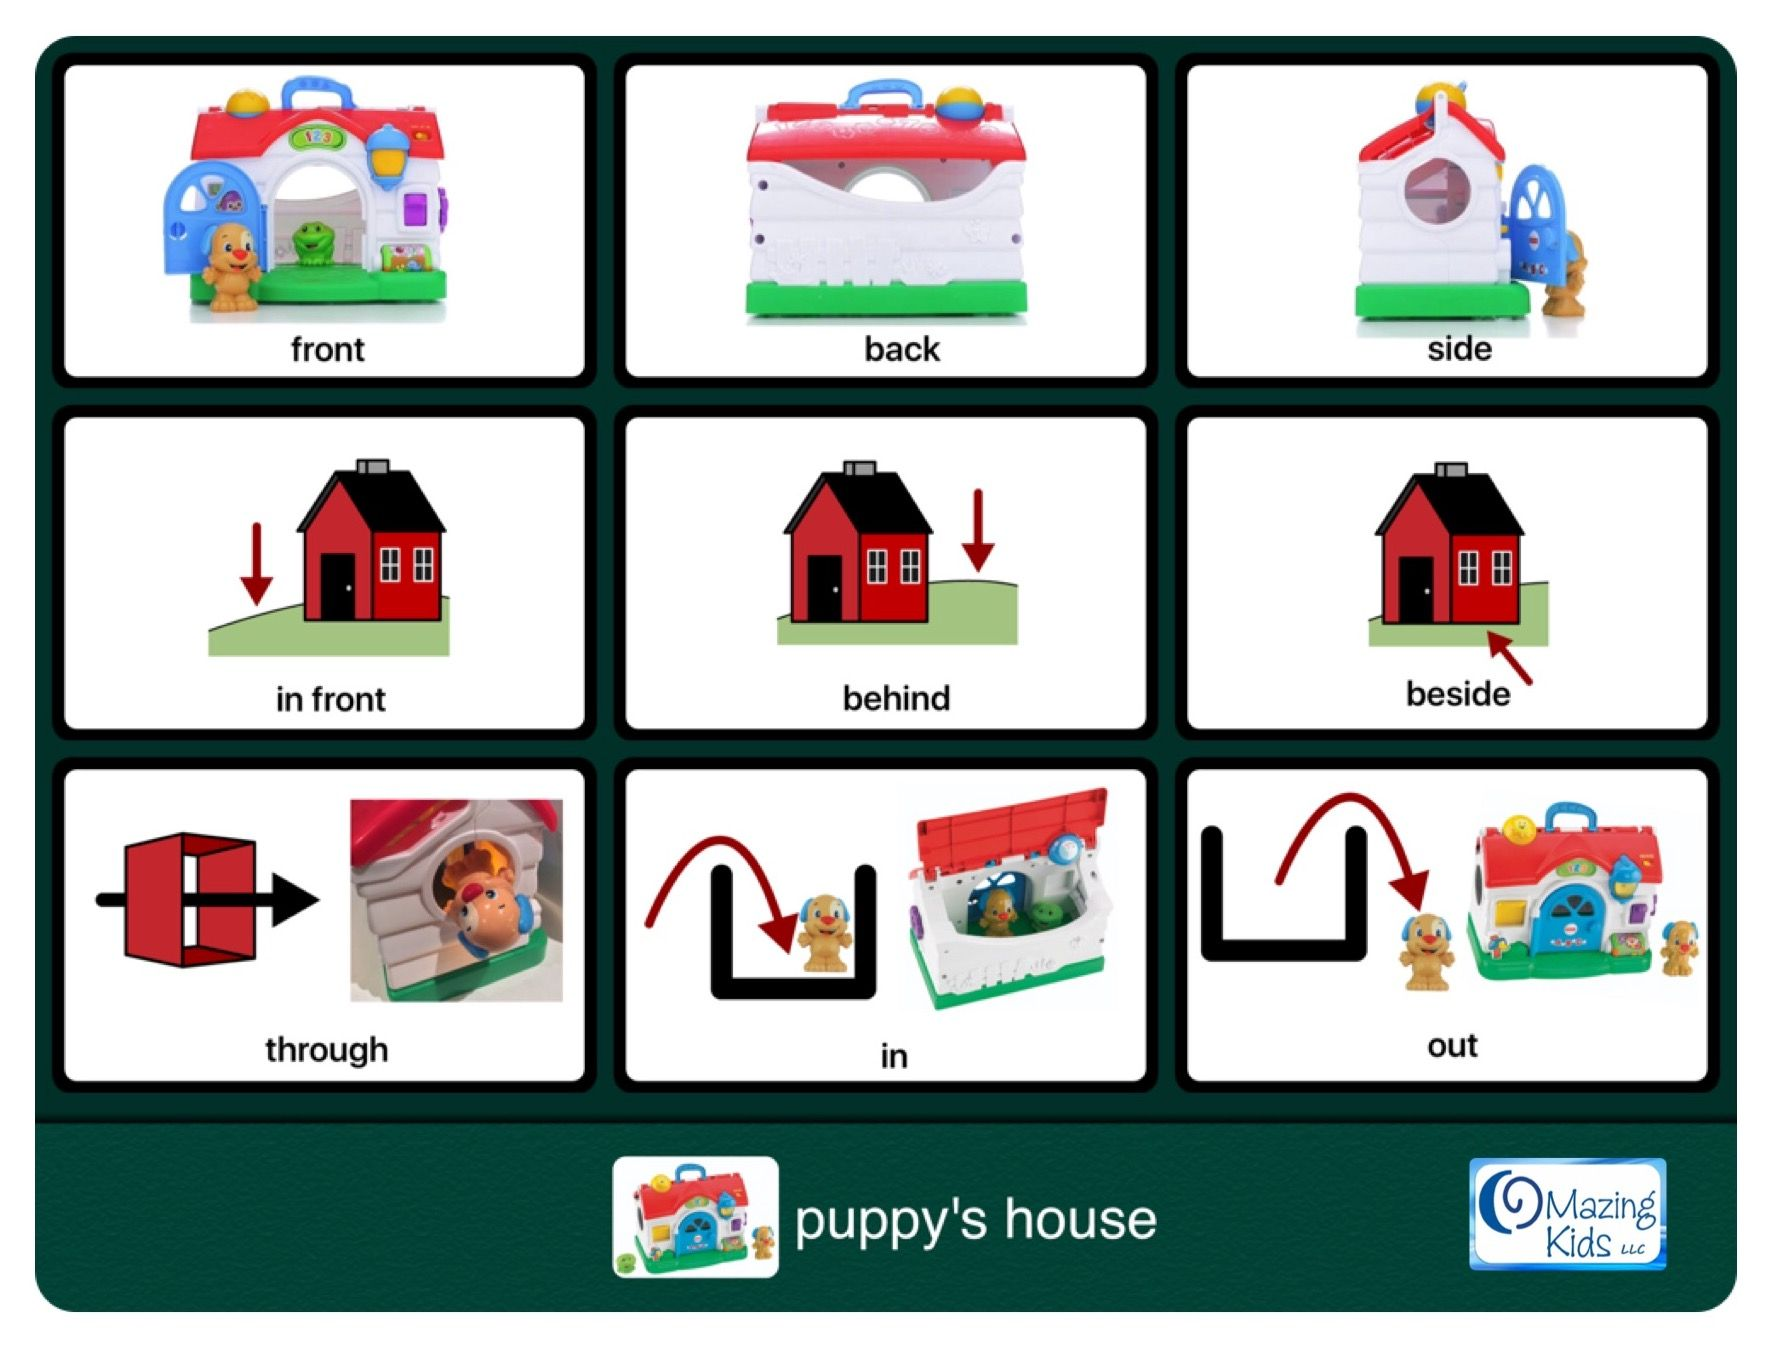 Preposition Supports For Fisher Price Puppy S House Also See Pronoun Set Spatial Concepts Activities Teaching Prepositions Spatial Concepts [ 1351 x 1783 Pixel ]